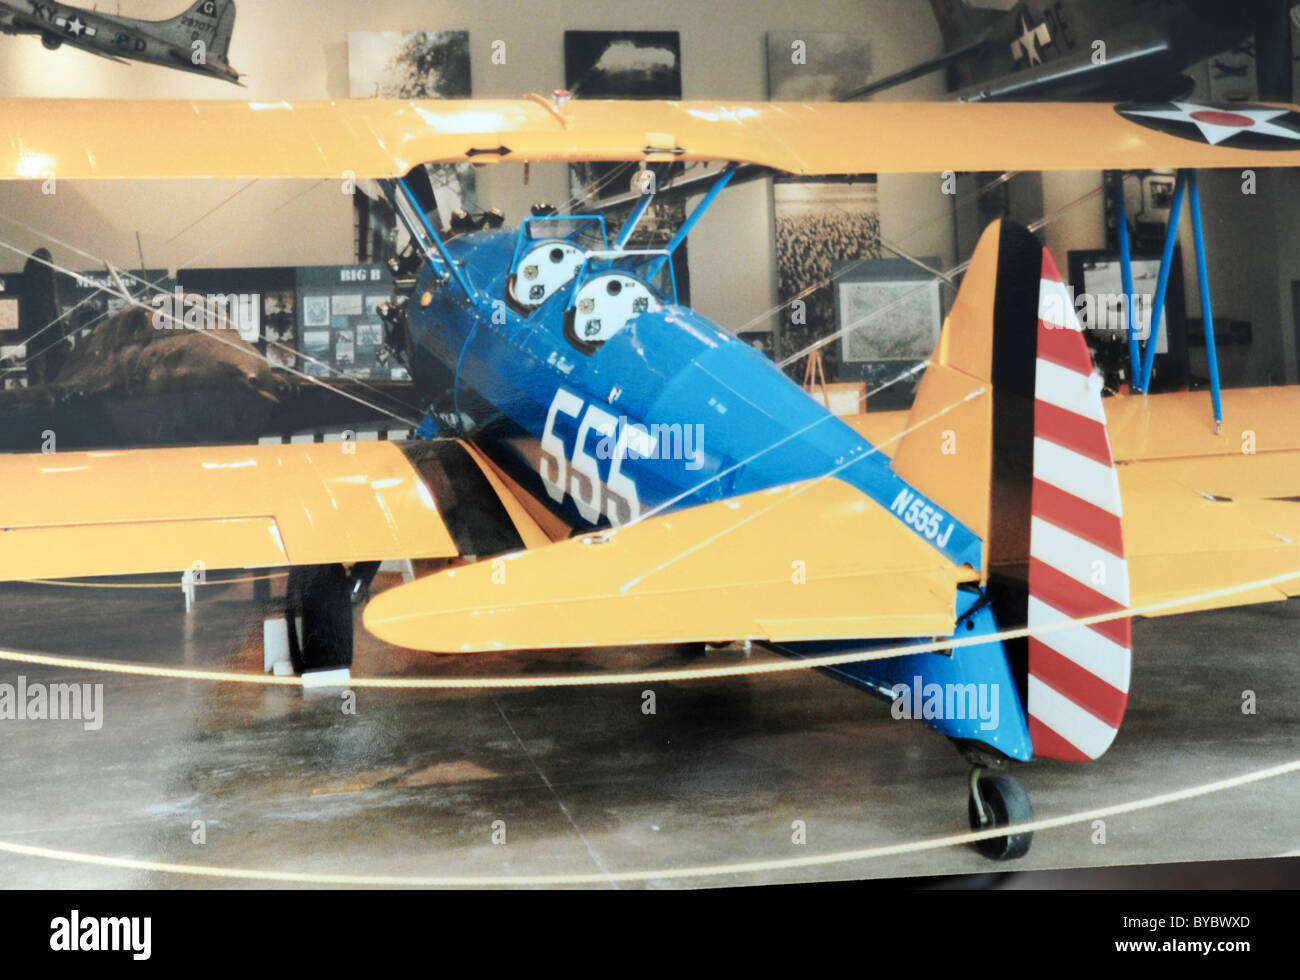 Biplane used by US Air Force in WW II - Stock Image